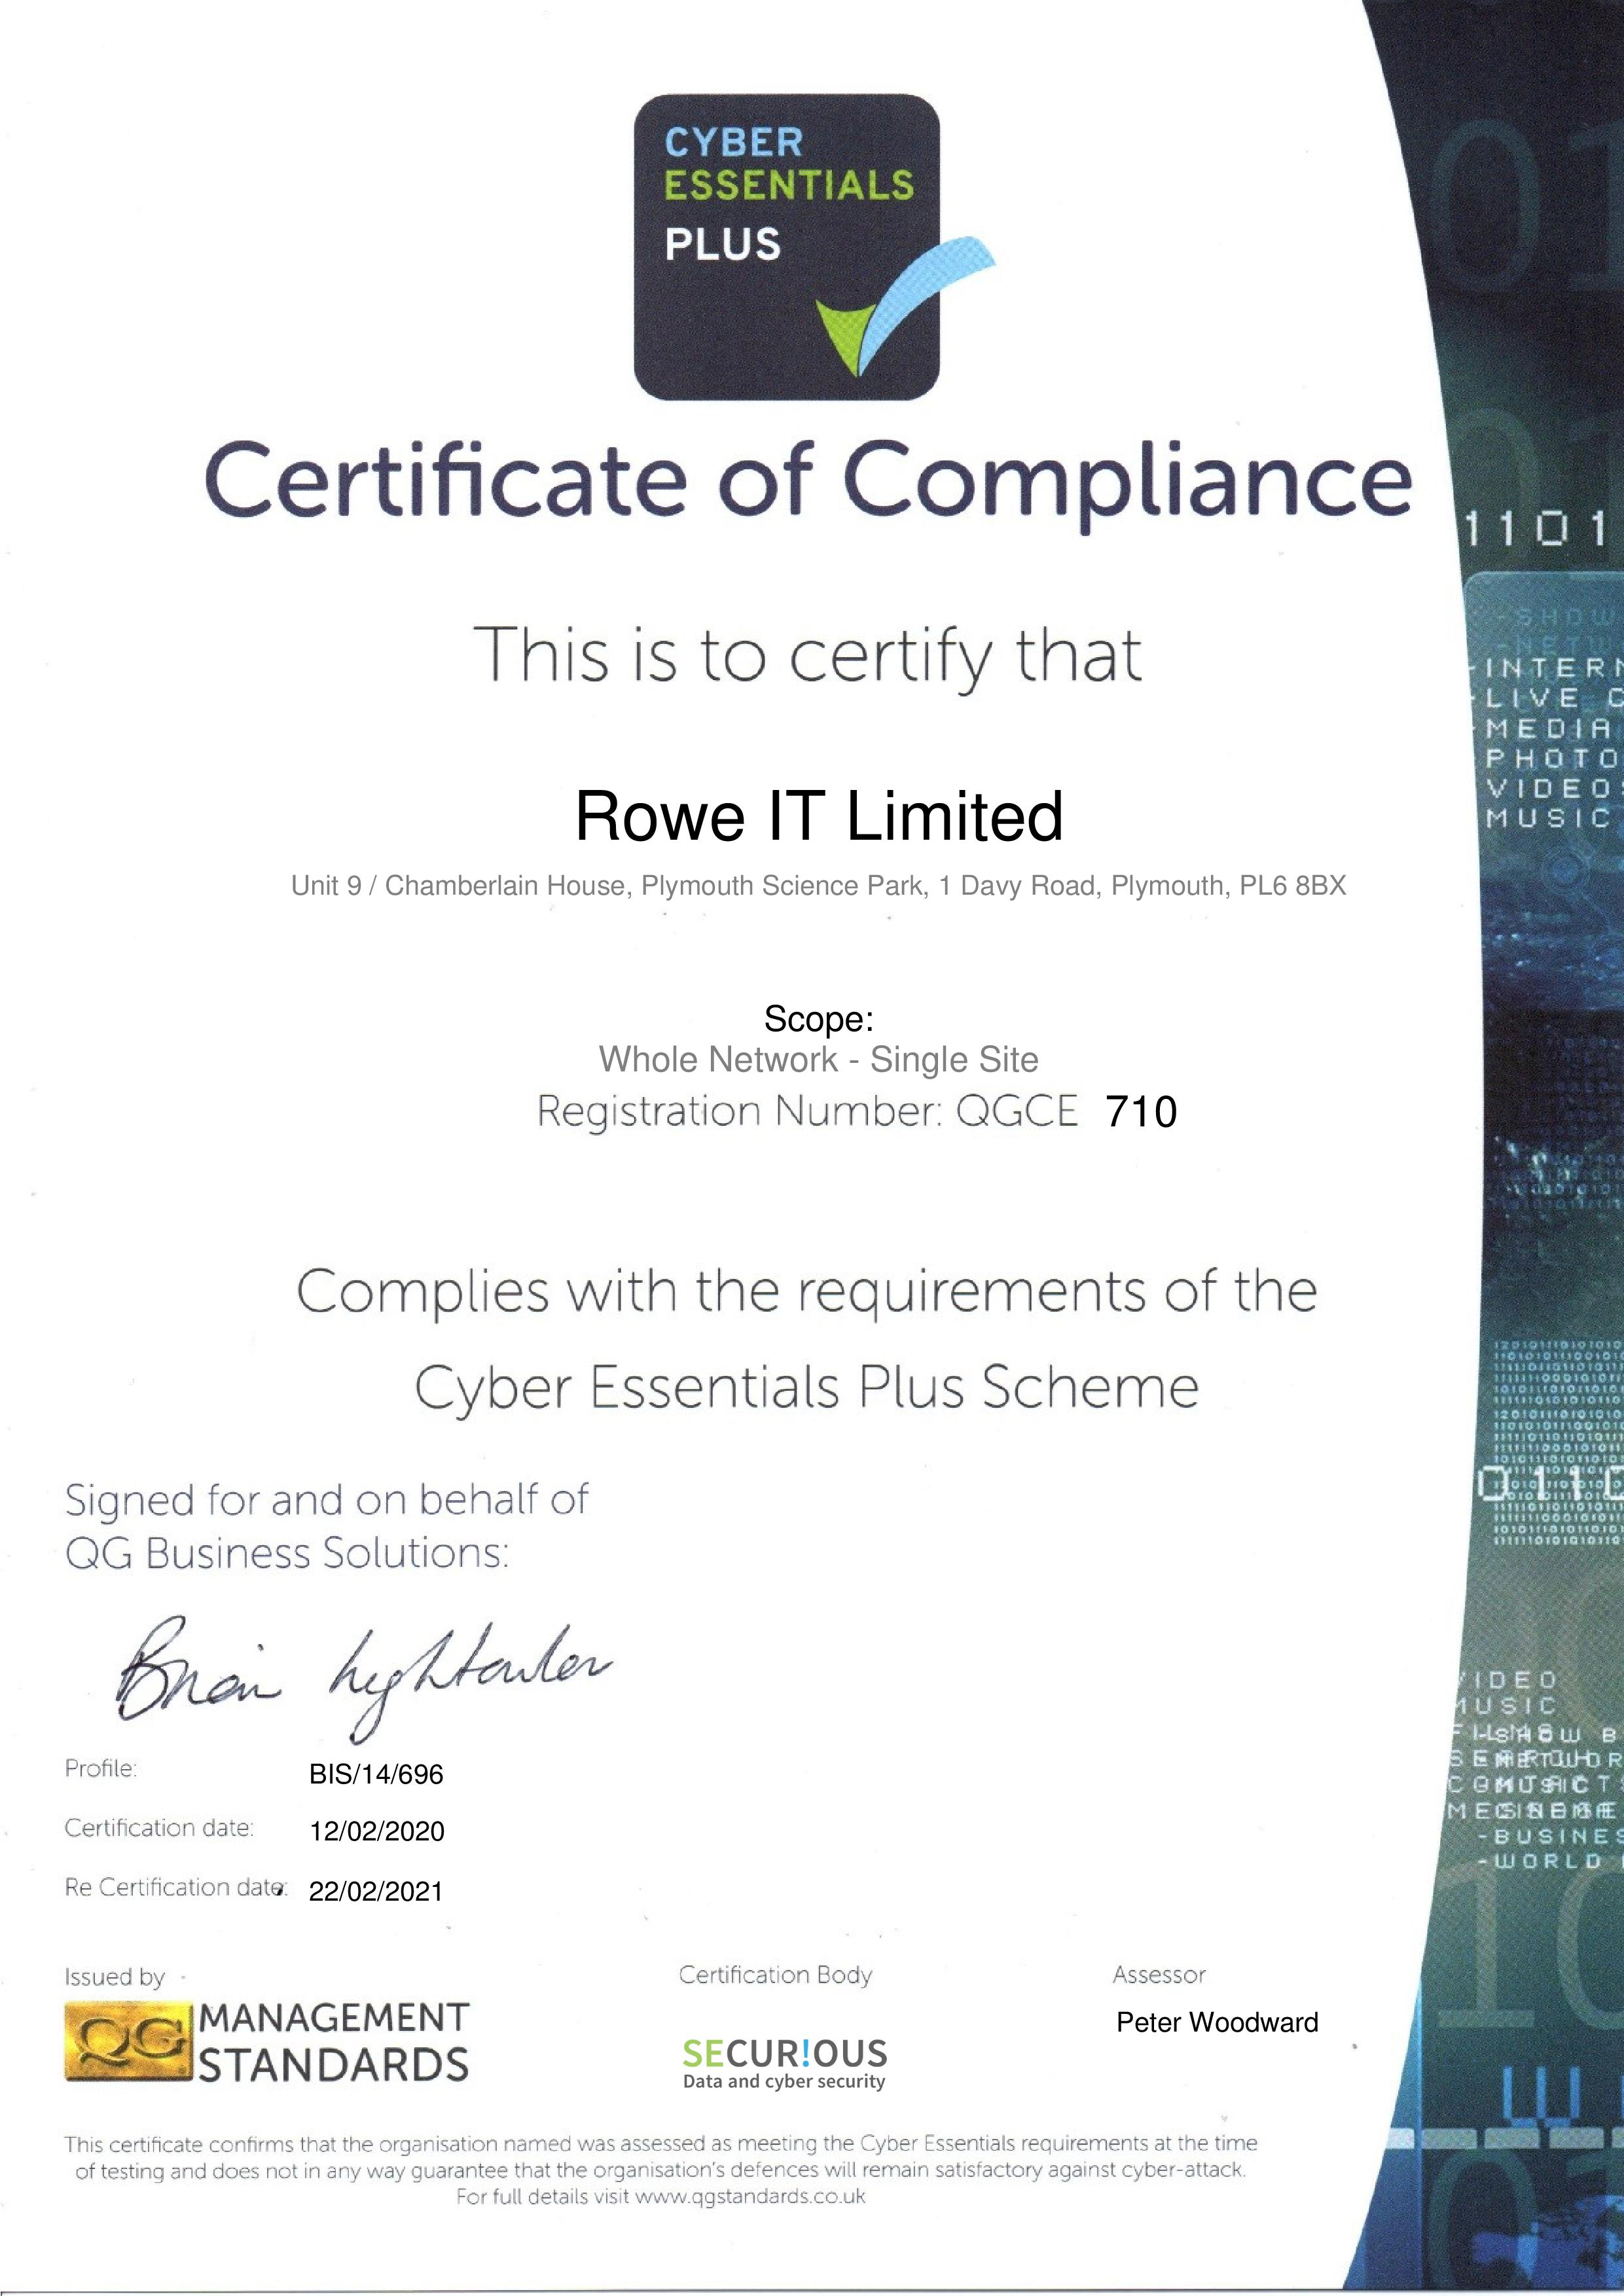 QGCE710 Rowe IT Limited